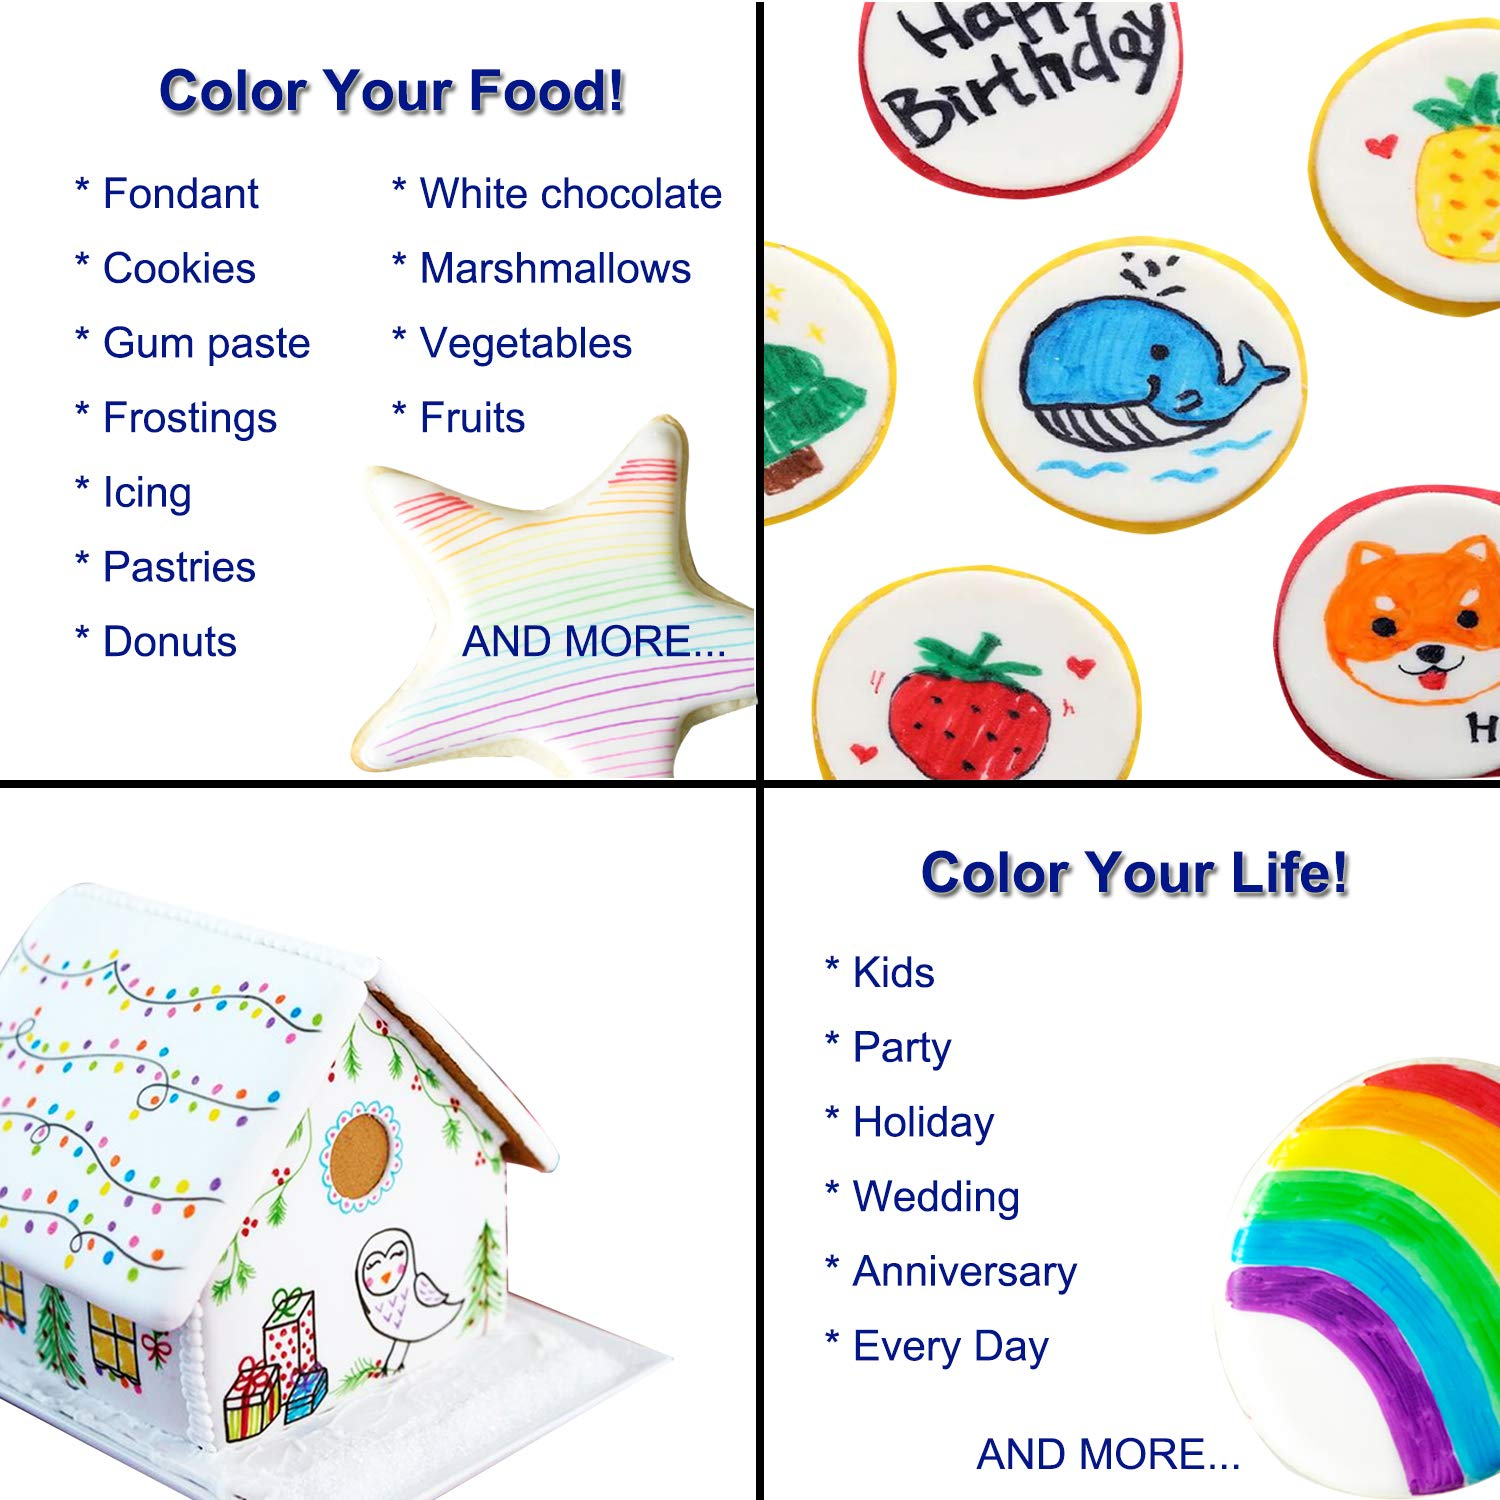 Food coloring Pens, 11Pcs Double Sided Food Grade and Edible Marker,Gourmet Writers for Decorating Fondant,Cakes, Cookies, Frosting, Easter Eggs, Thick Tip and Fine Tip, 10 Colors, by Edibleink by EdibleInk (Image #5)